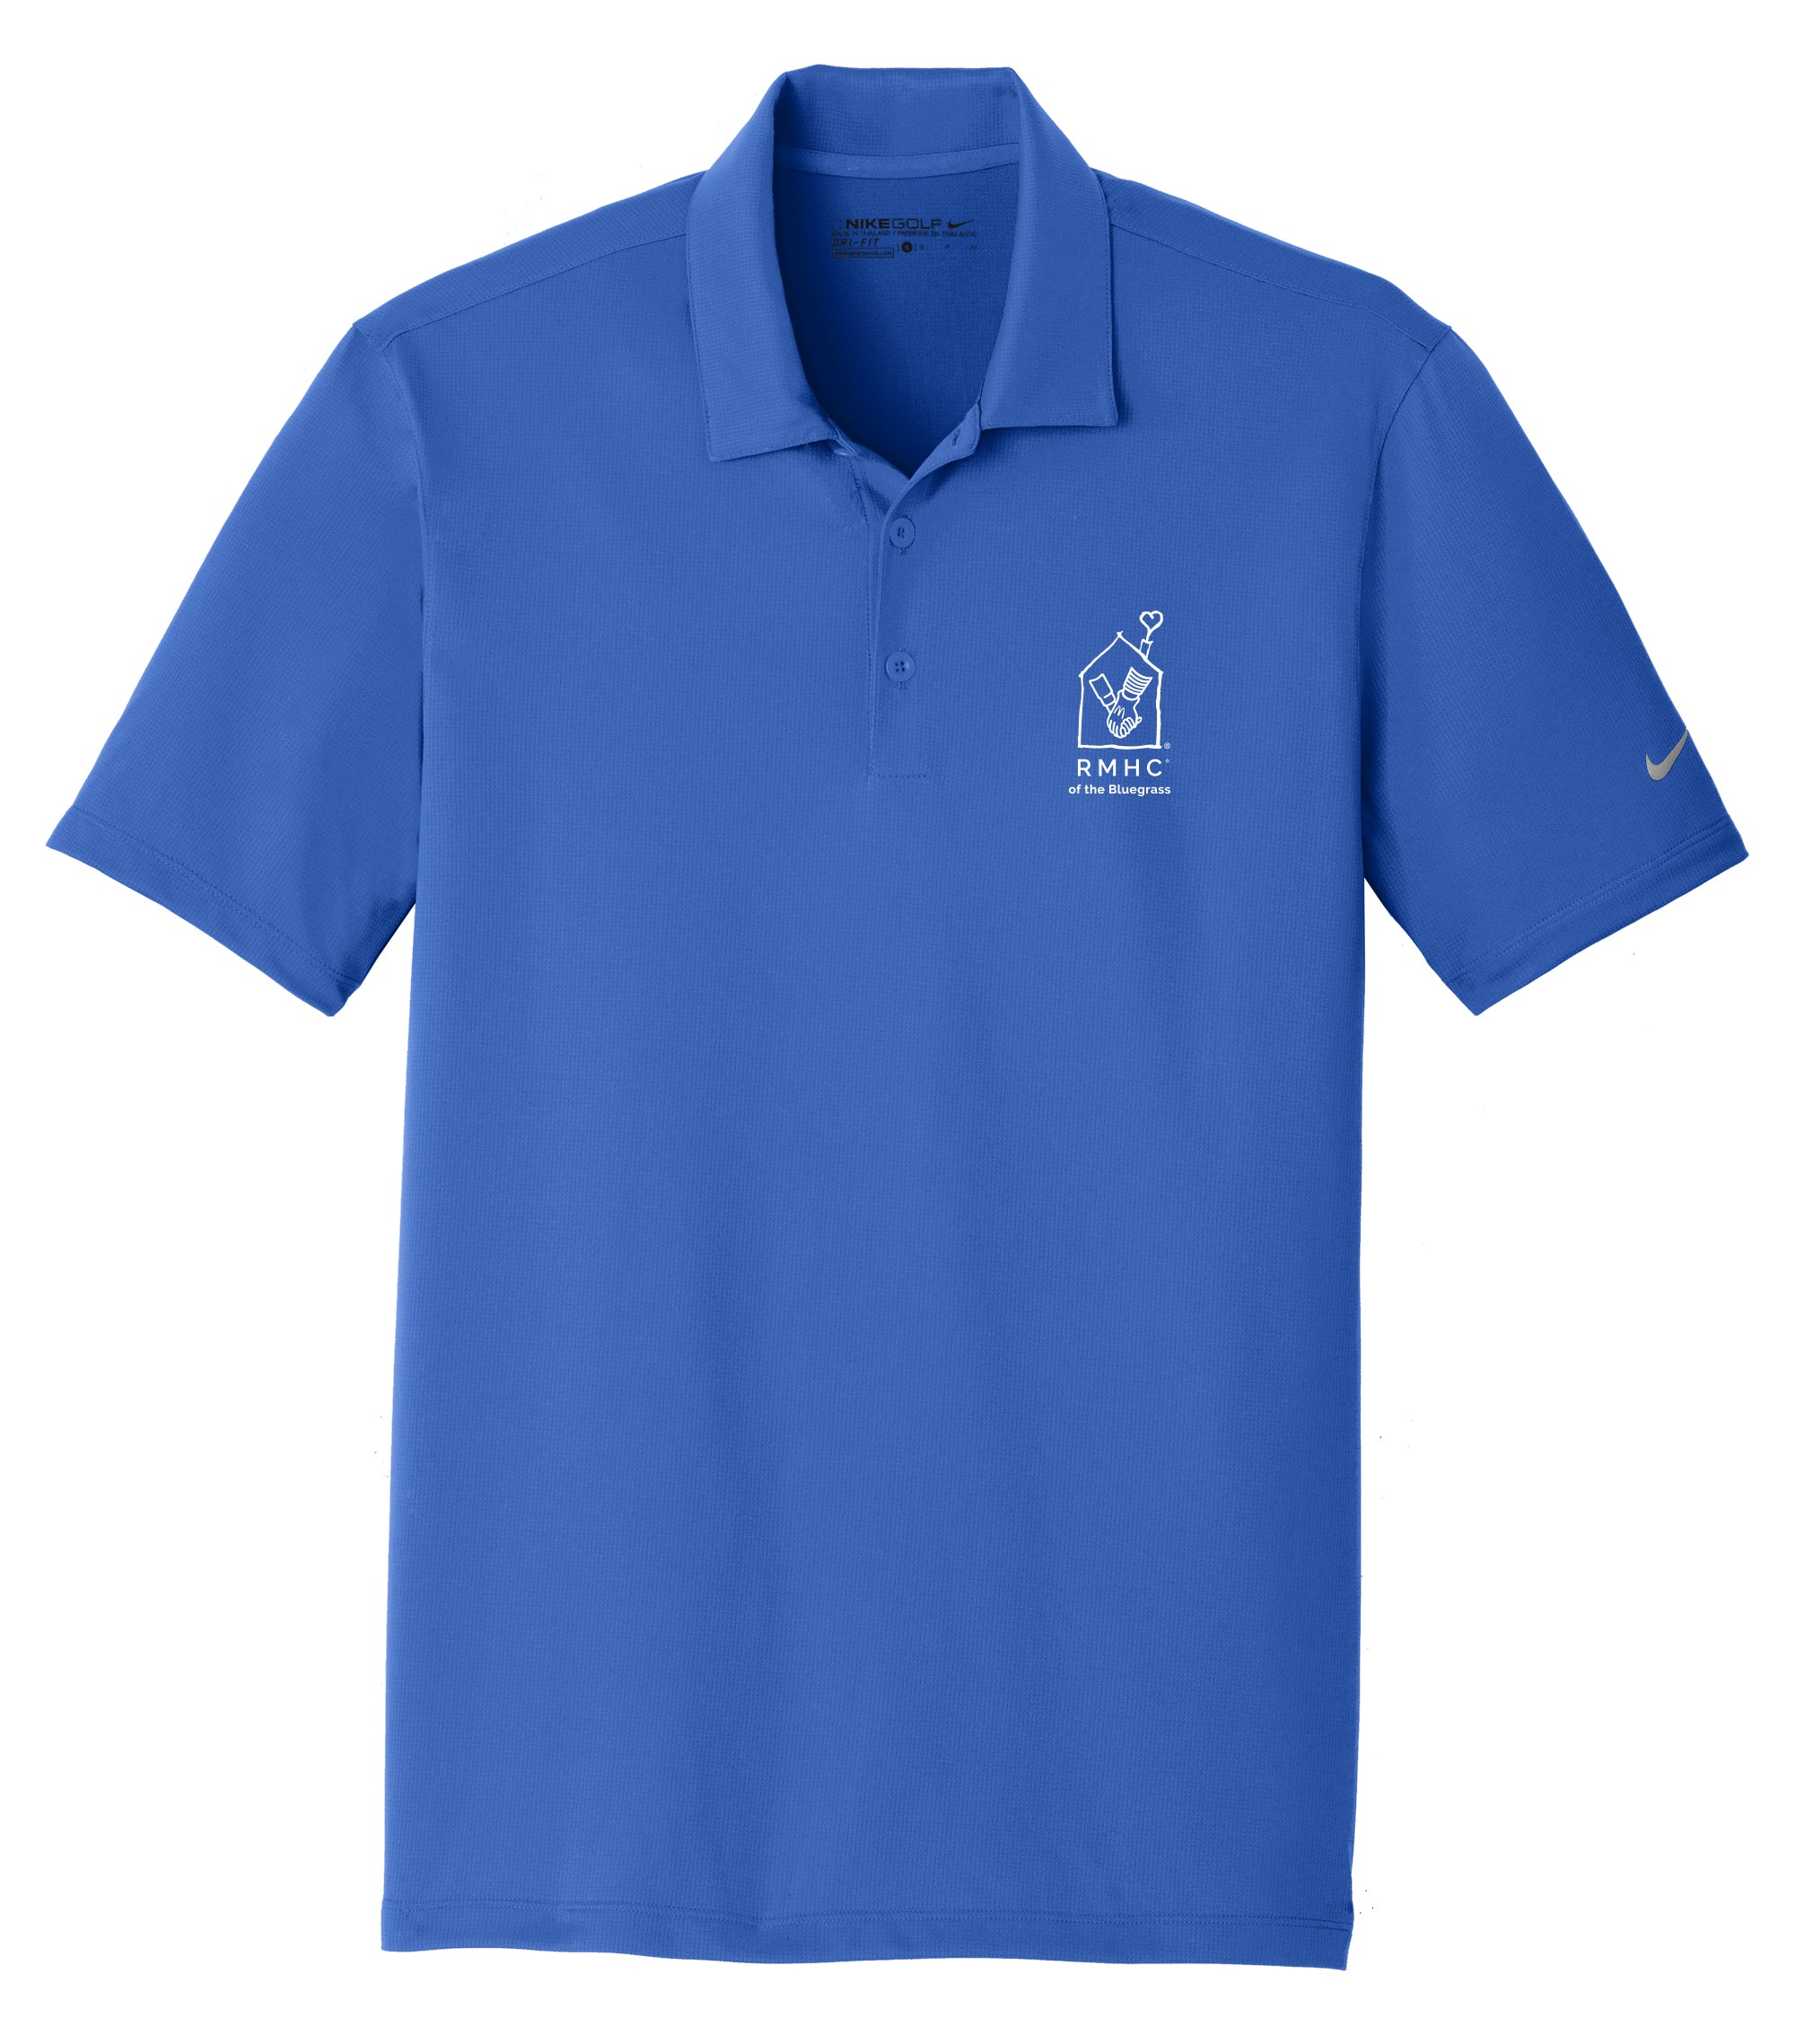 RMHC Men's Nike Dri-FIT Polo